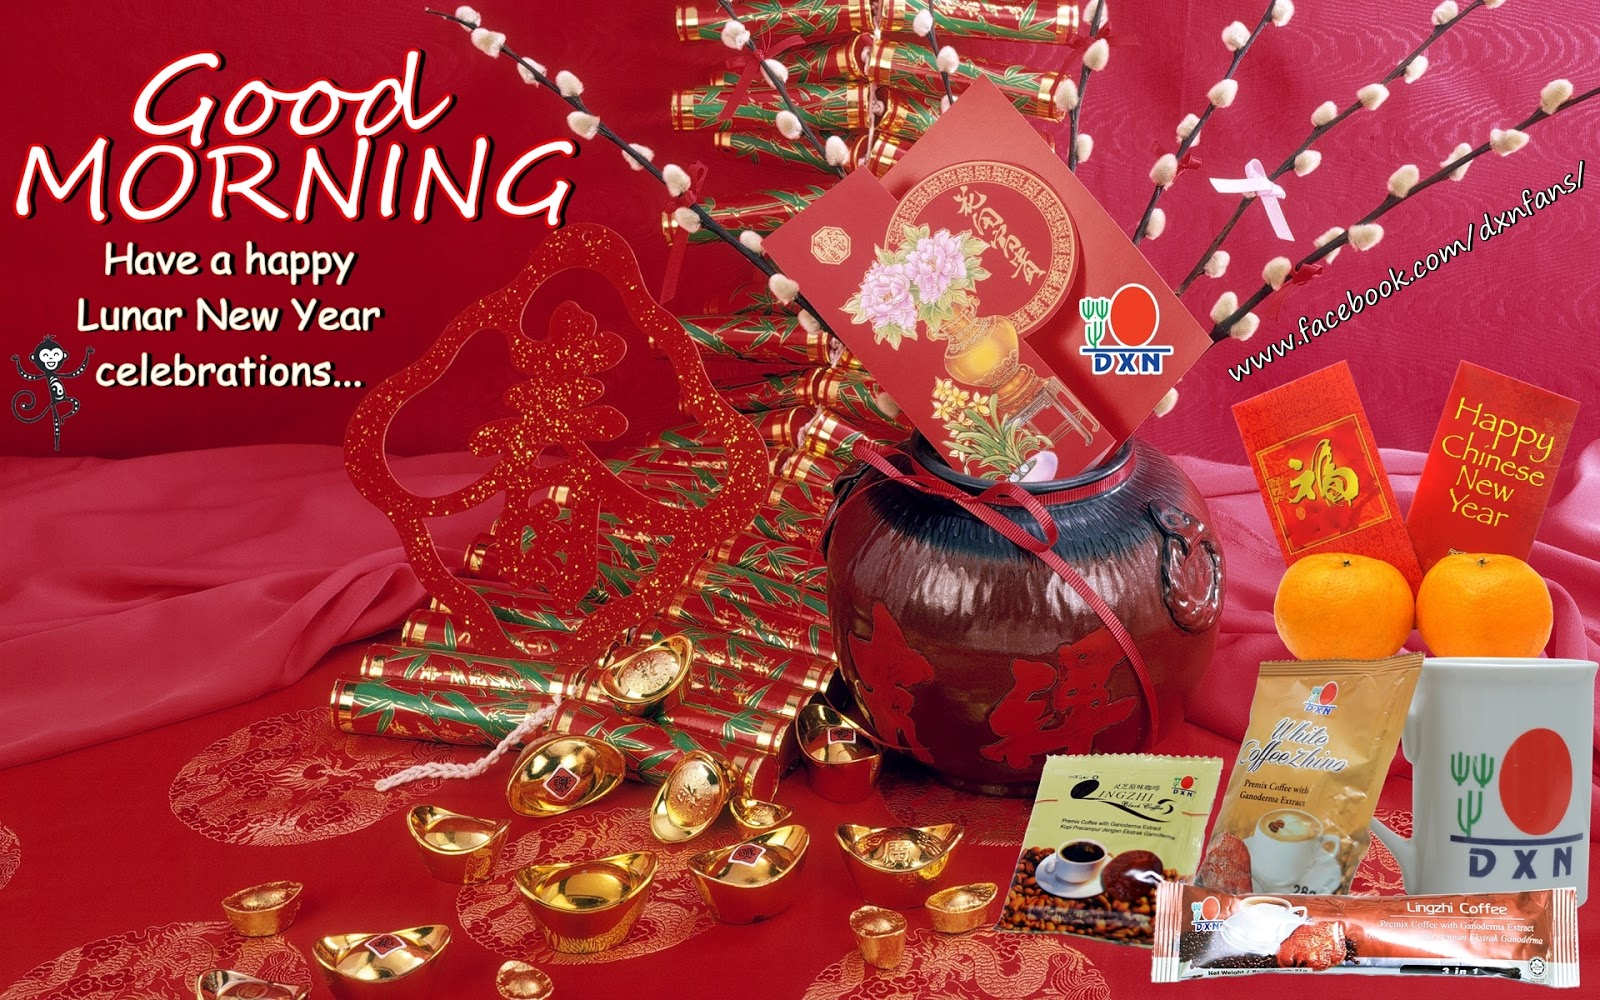 Good Morning Happy Chinese New Year : Welcome to the dxn fans happy chinese new year